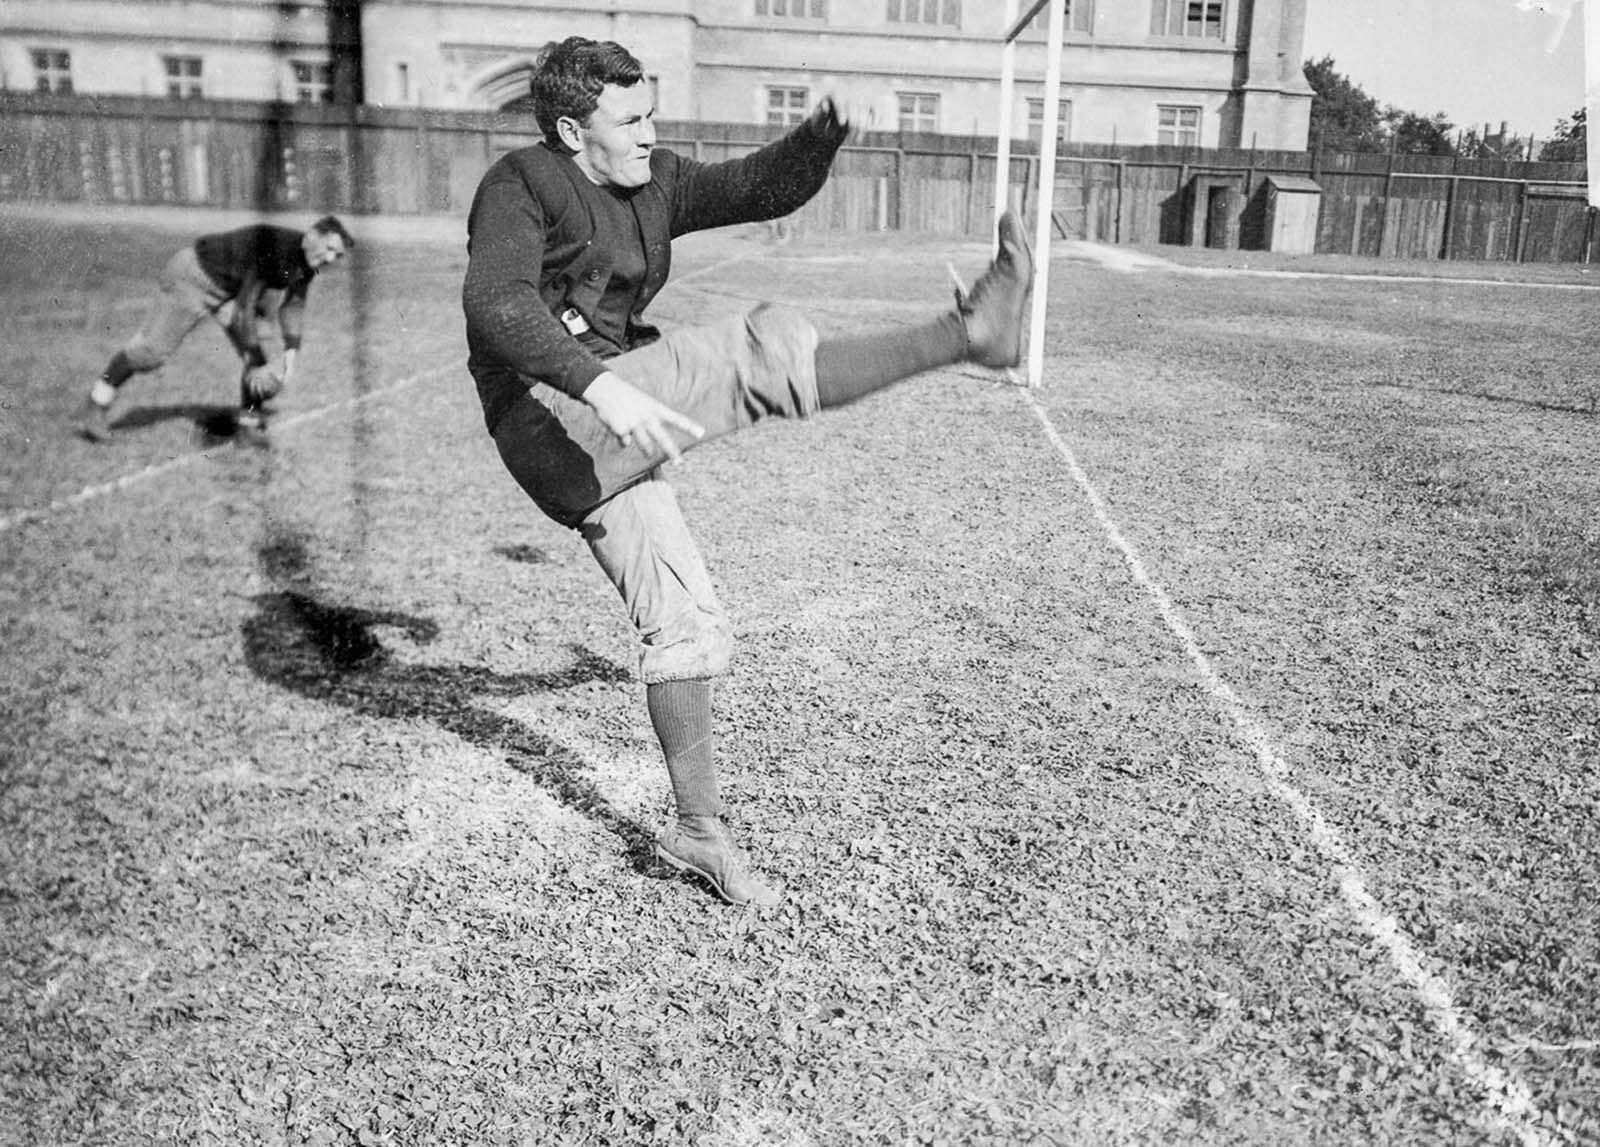 University of Chicago football player Orville